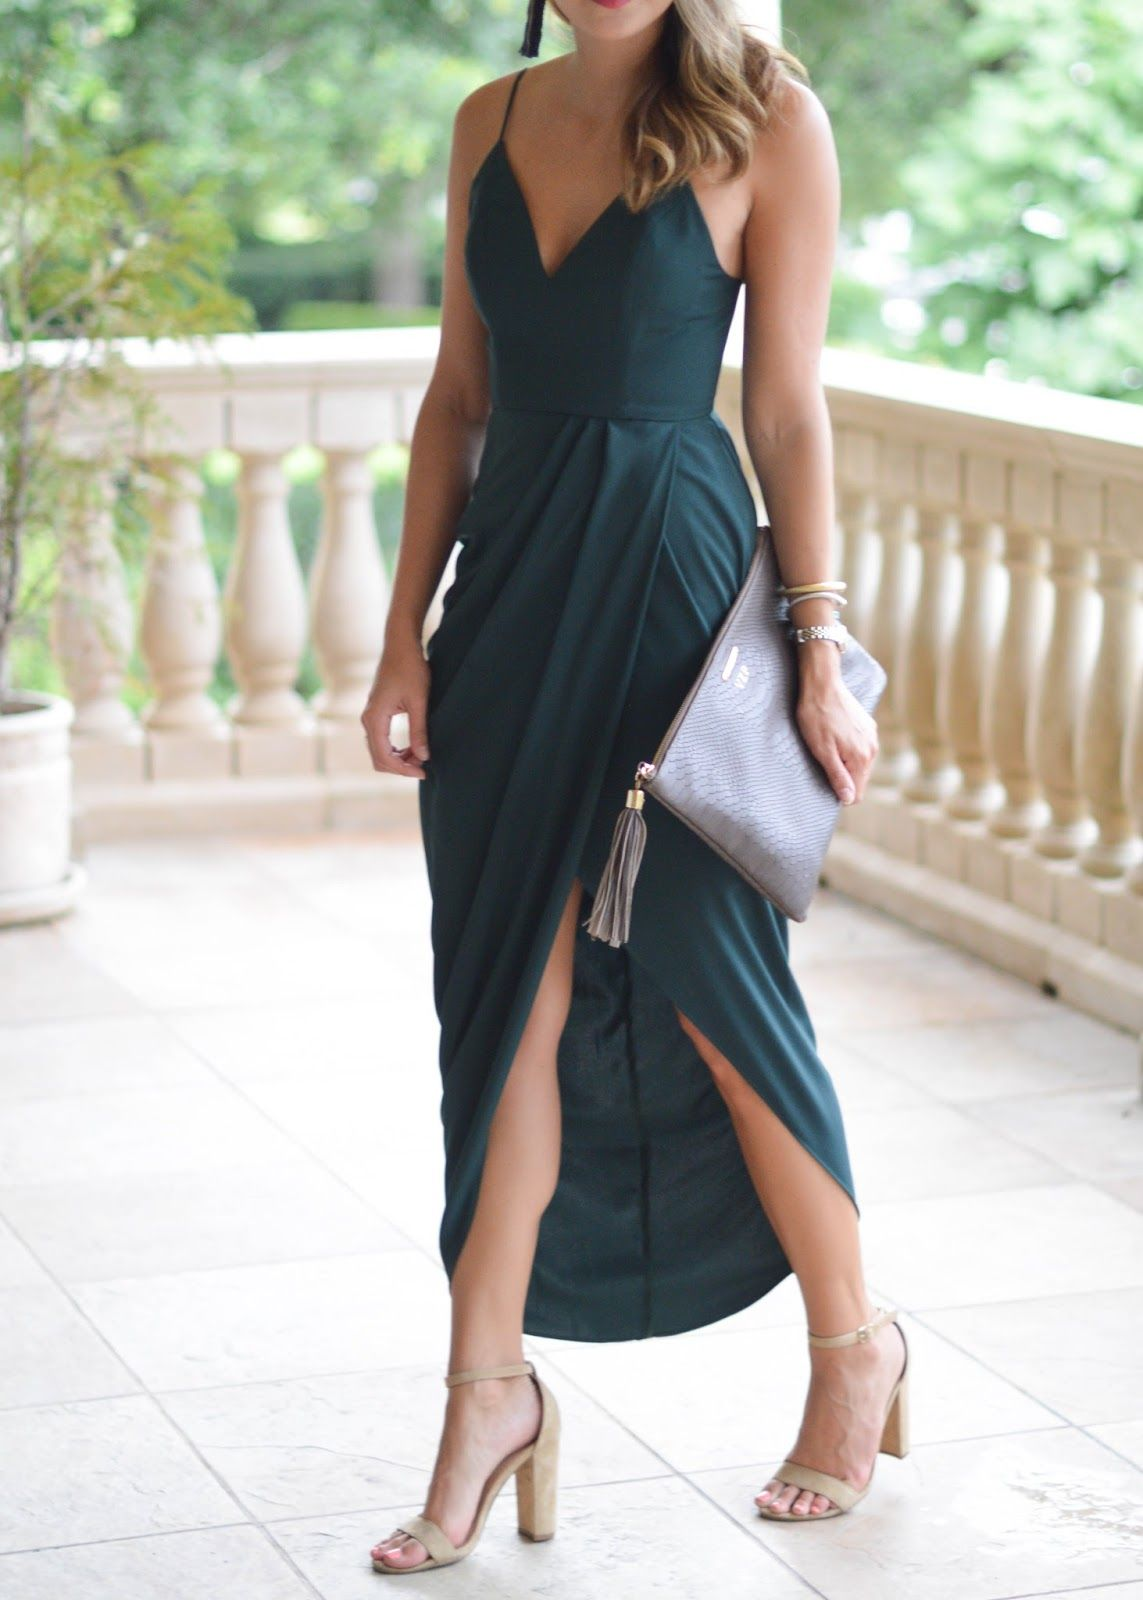 466a261470a6 draped maxi dress   wedding guest style   Southern Style   green dress